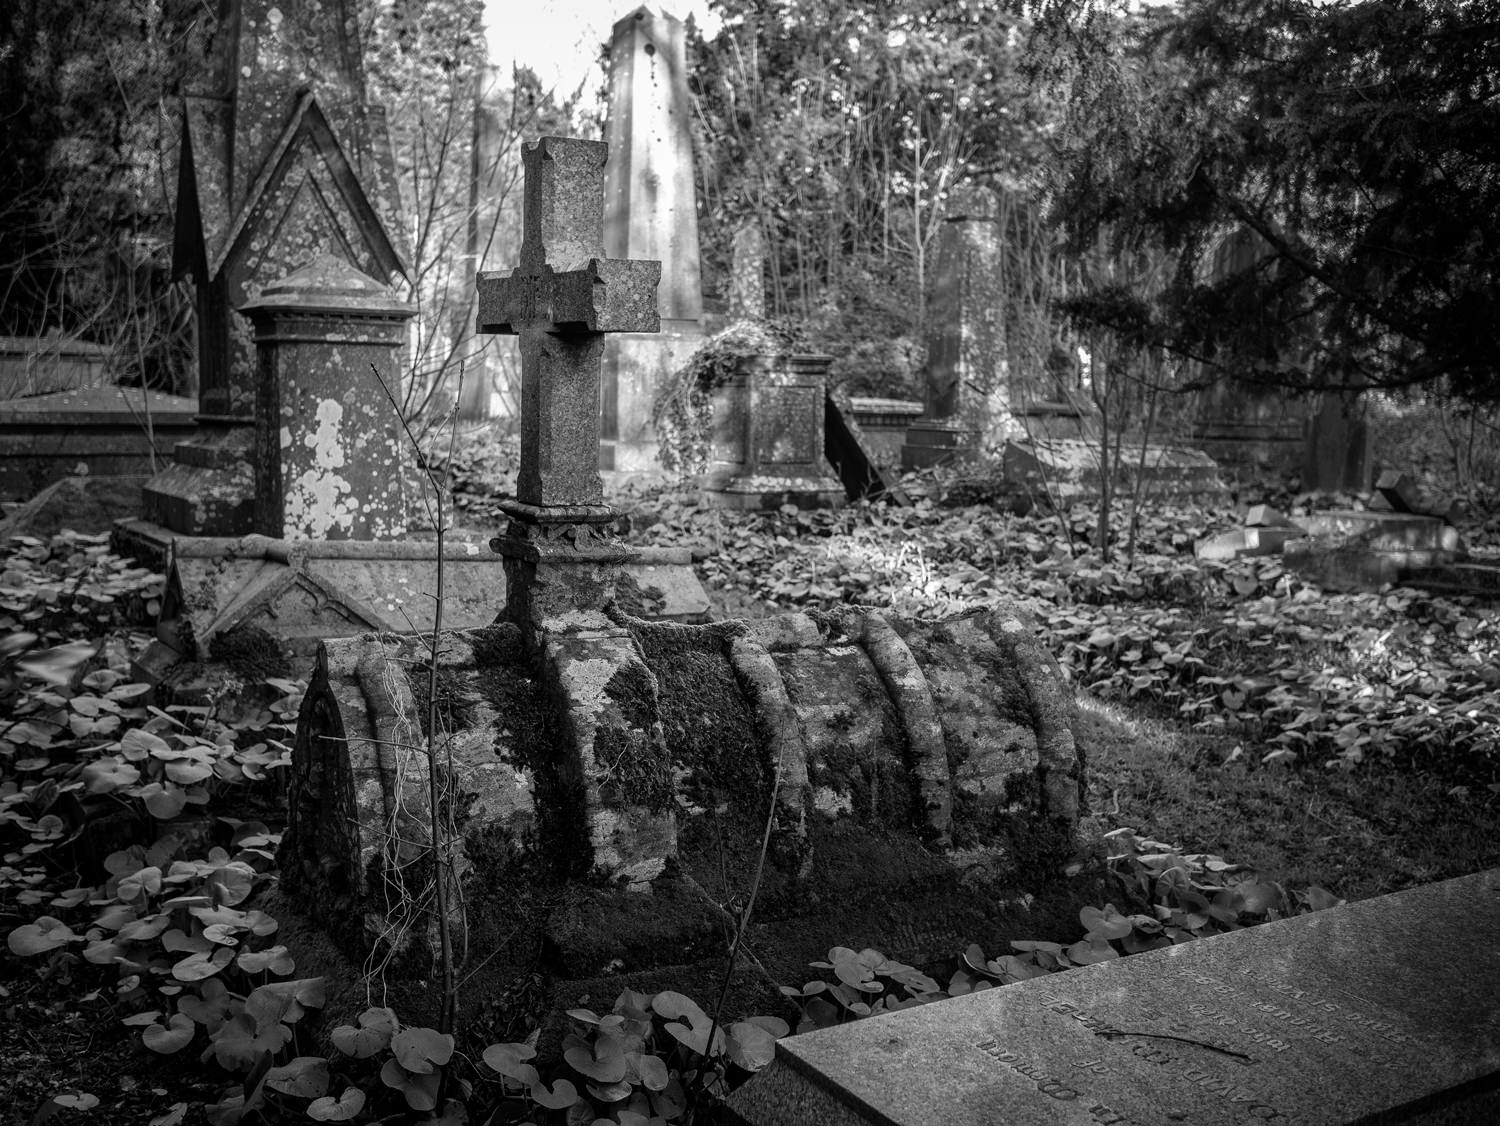 A strange-shaped grave. with a cross on top. The grave is the shape of an arched roof and has moss growing all over it.